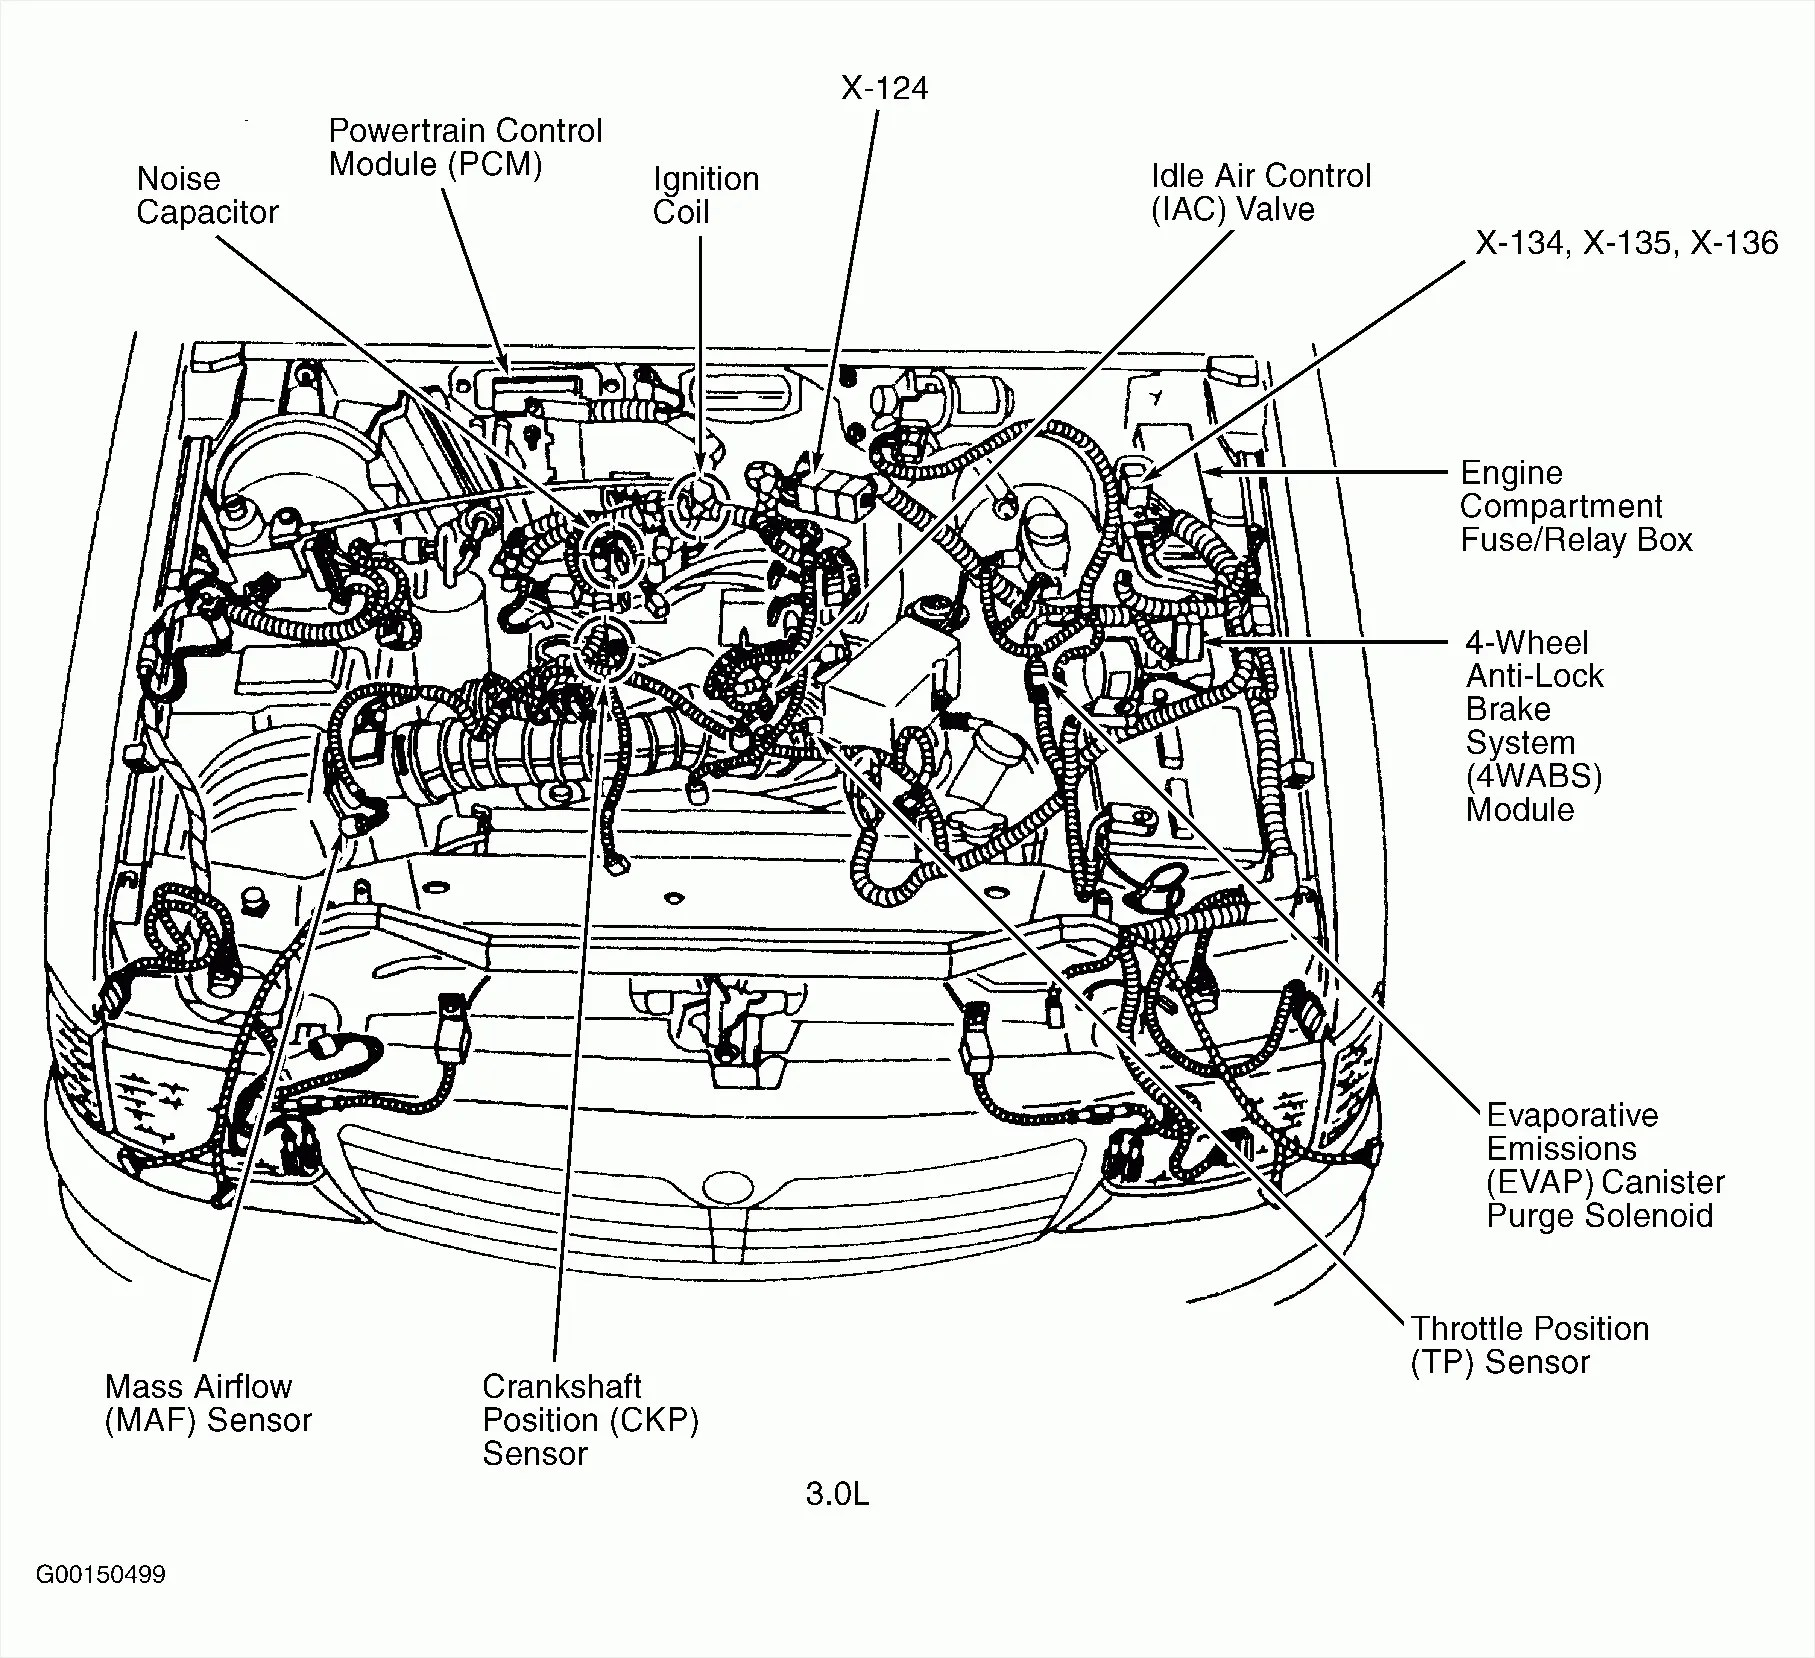 hight resolution of mazda engine diagram wiring diagram files converters mazda 6 engine parts diagram wiring diagram operations mazda